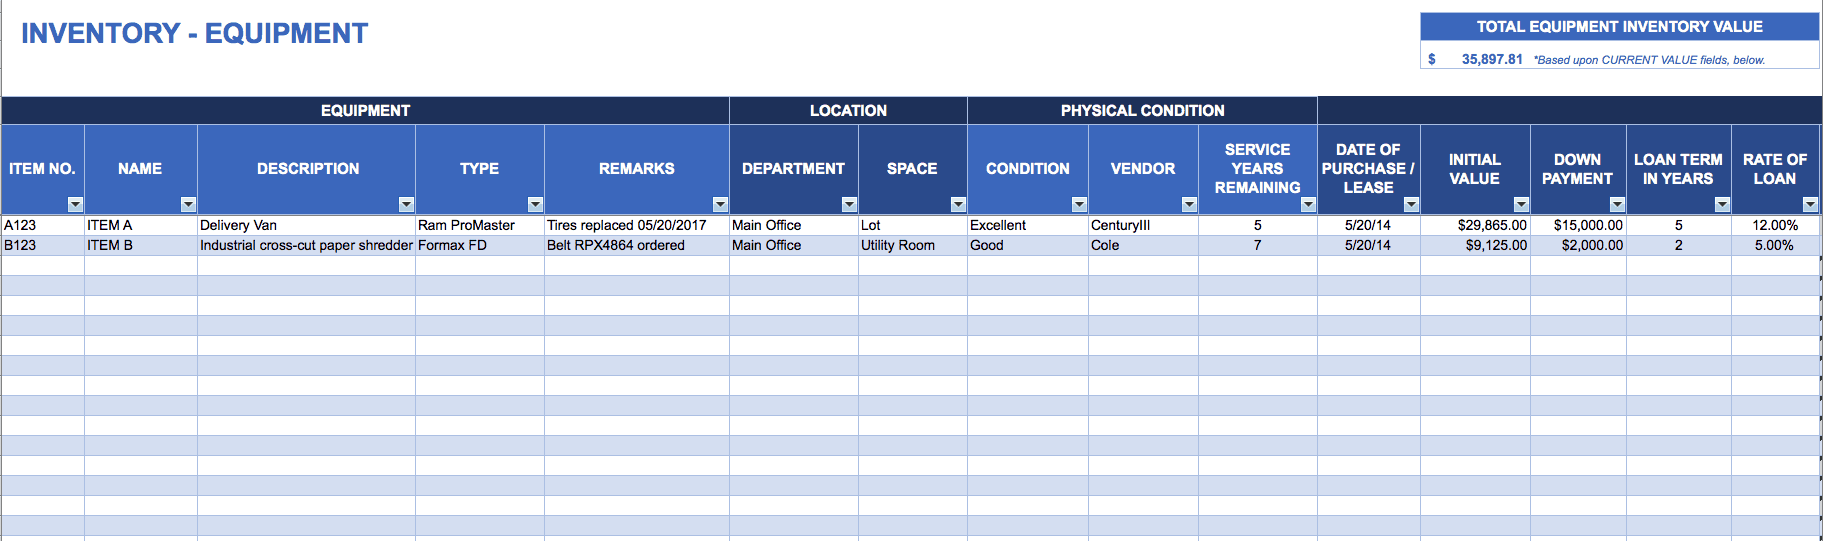 Equipment Inventory Template  Office Inventory Spreadsheet